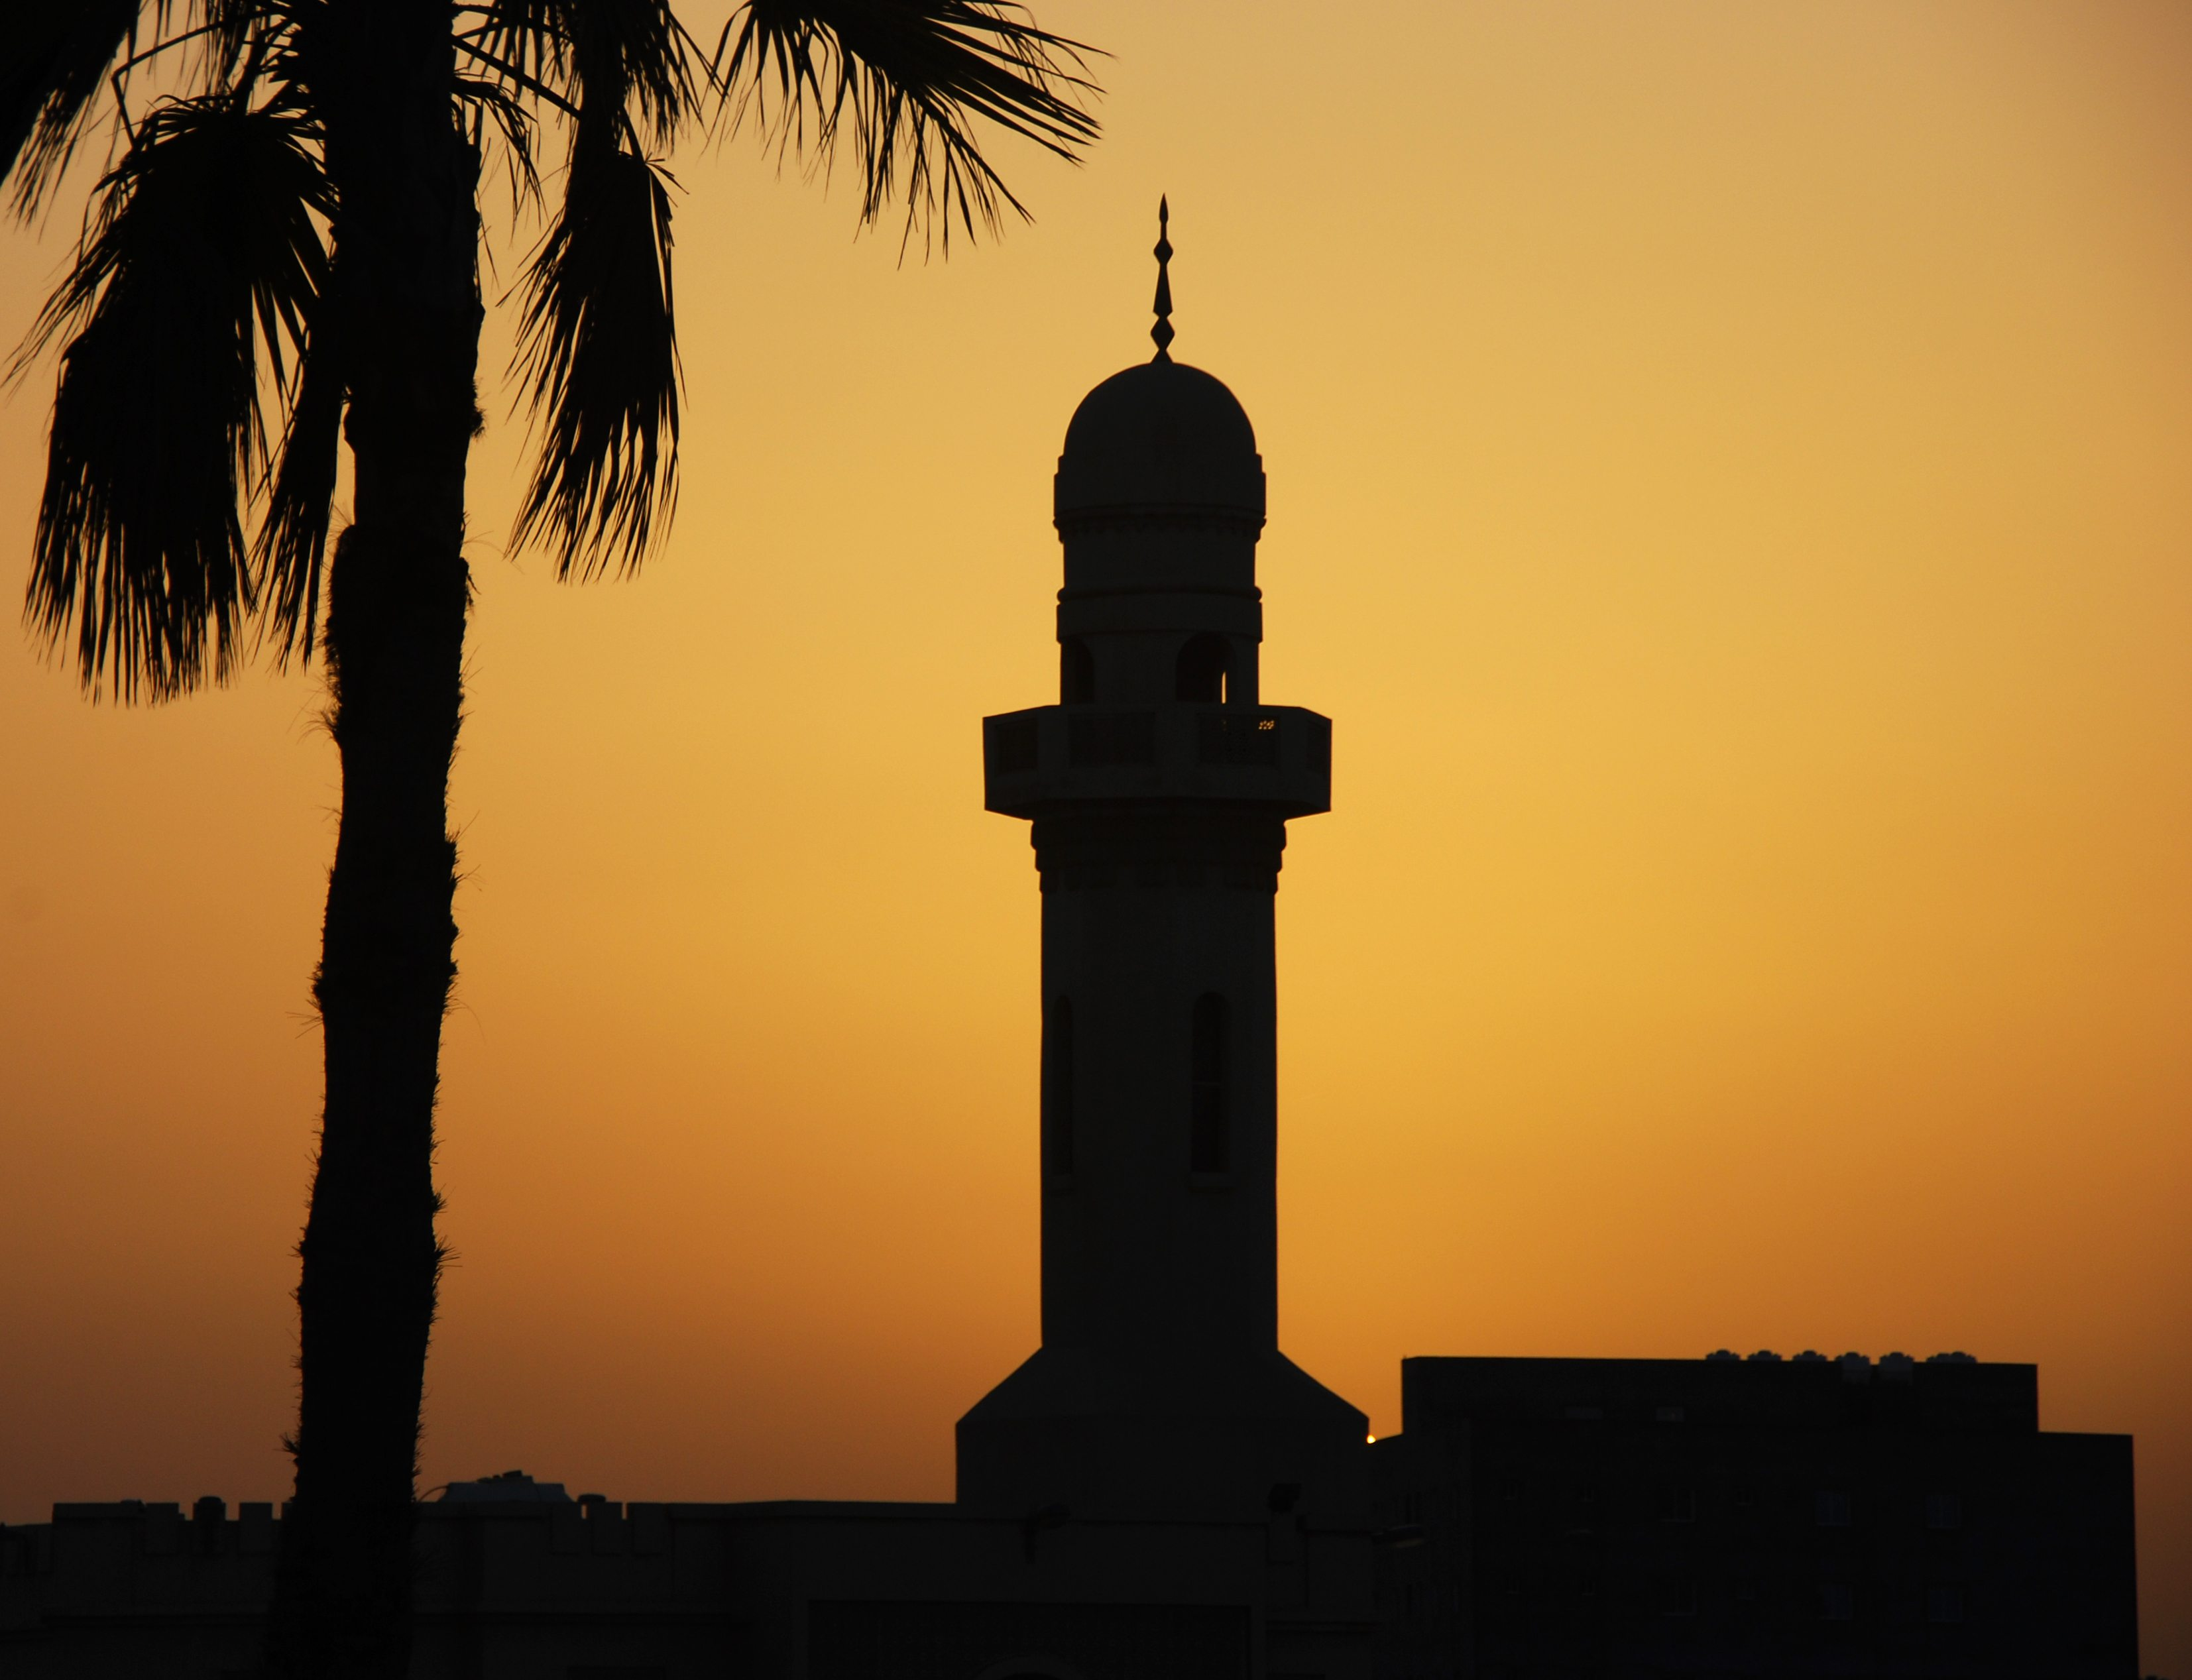 islam and muslims There are no real differences between islam and jihad muslims are also expected to wage a physical jihad when their nations or communities are invaded by foreign.